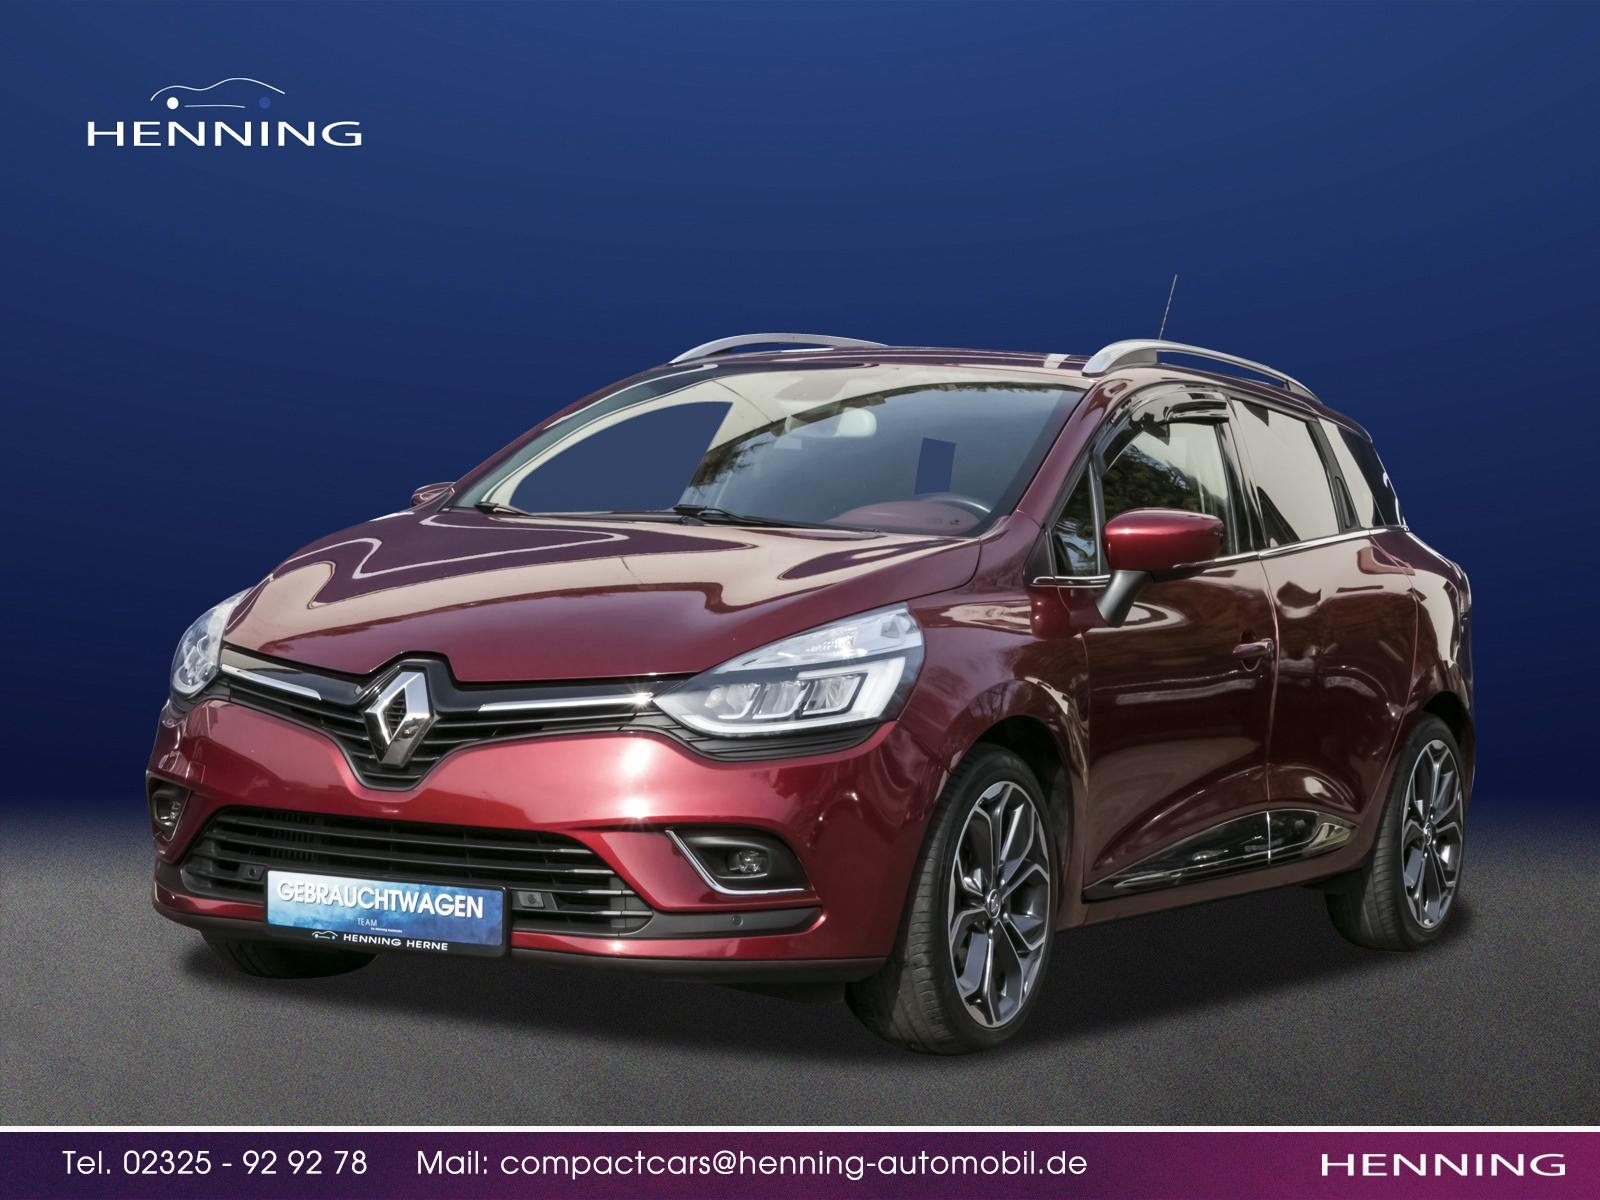 RENAULT Clio IV 1.2 TCe 120 eco² Grandtour Intens ENERGY